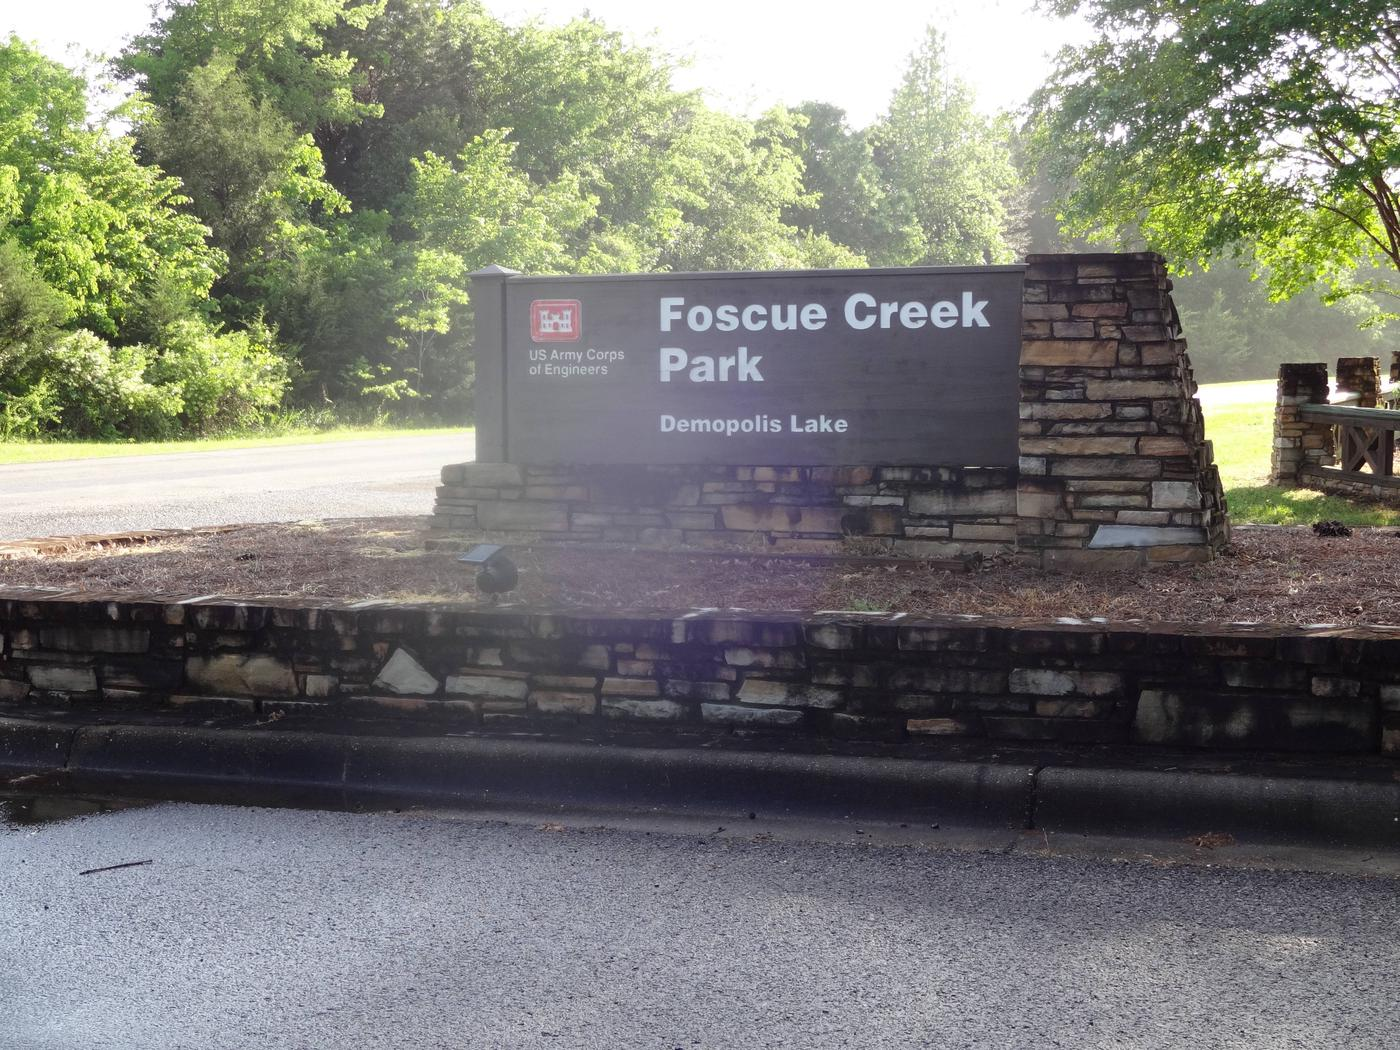 Foscue Creek Campground and Park entry sign.Foscue Creek Campground and Park